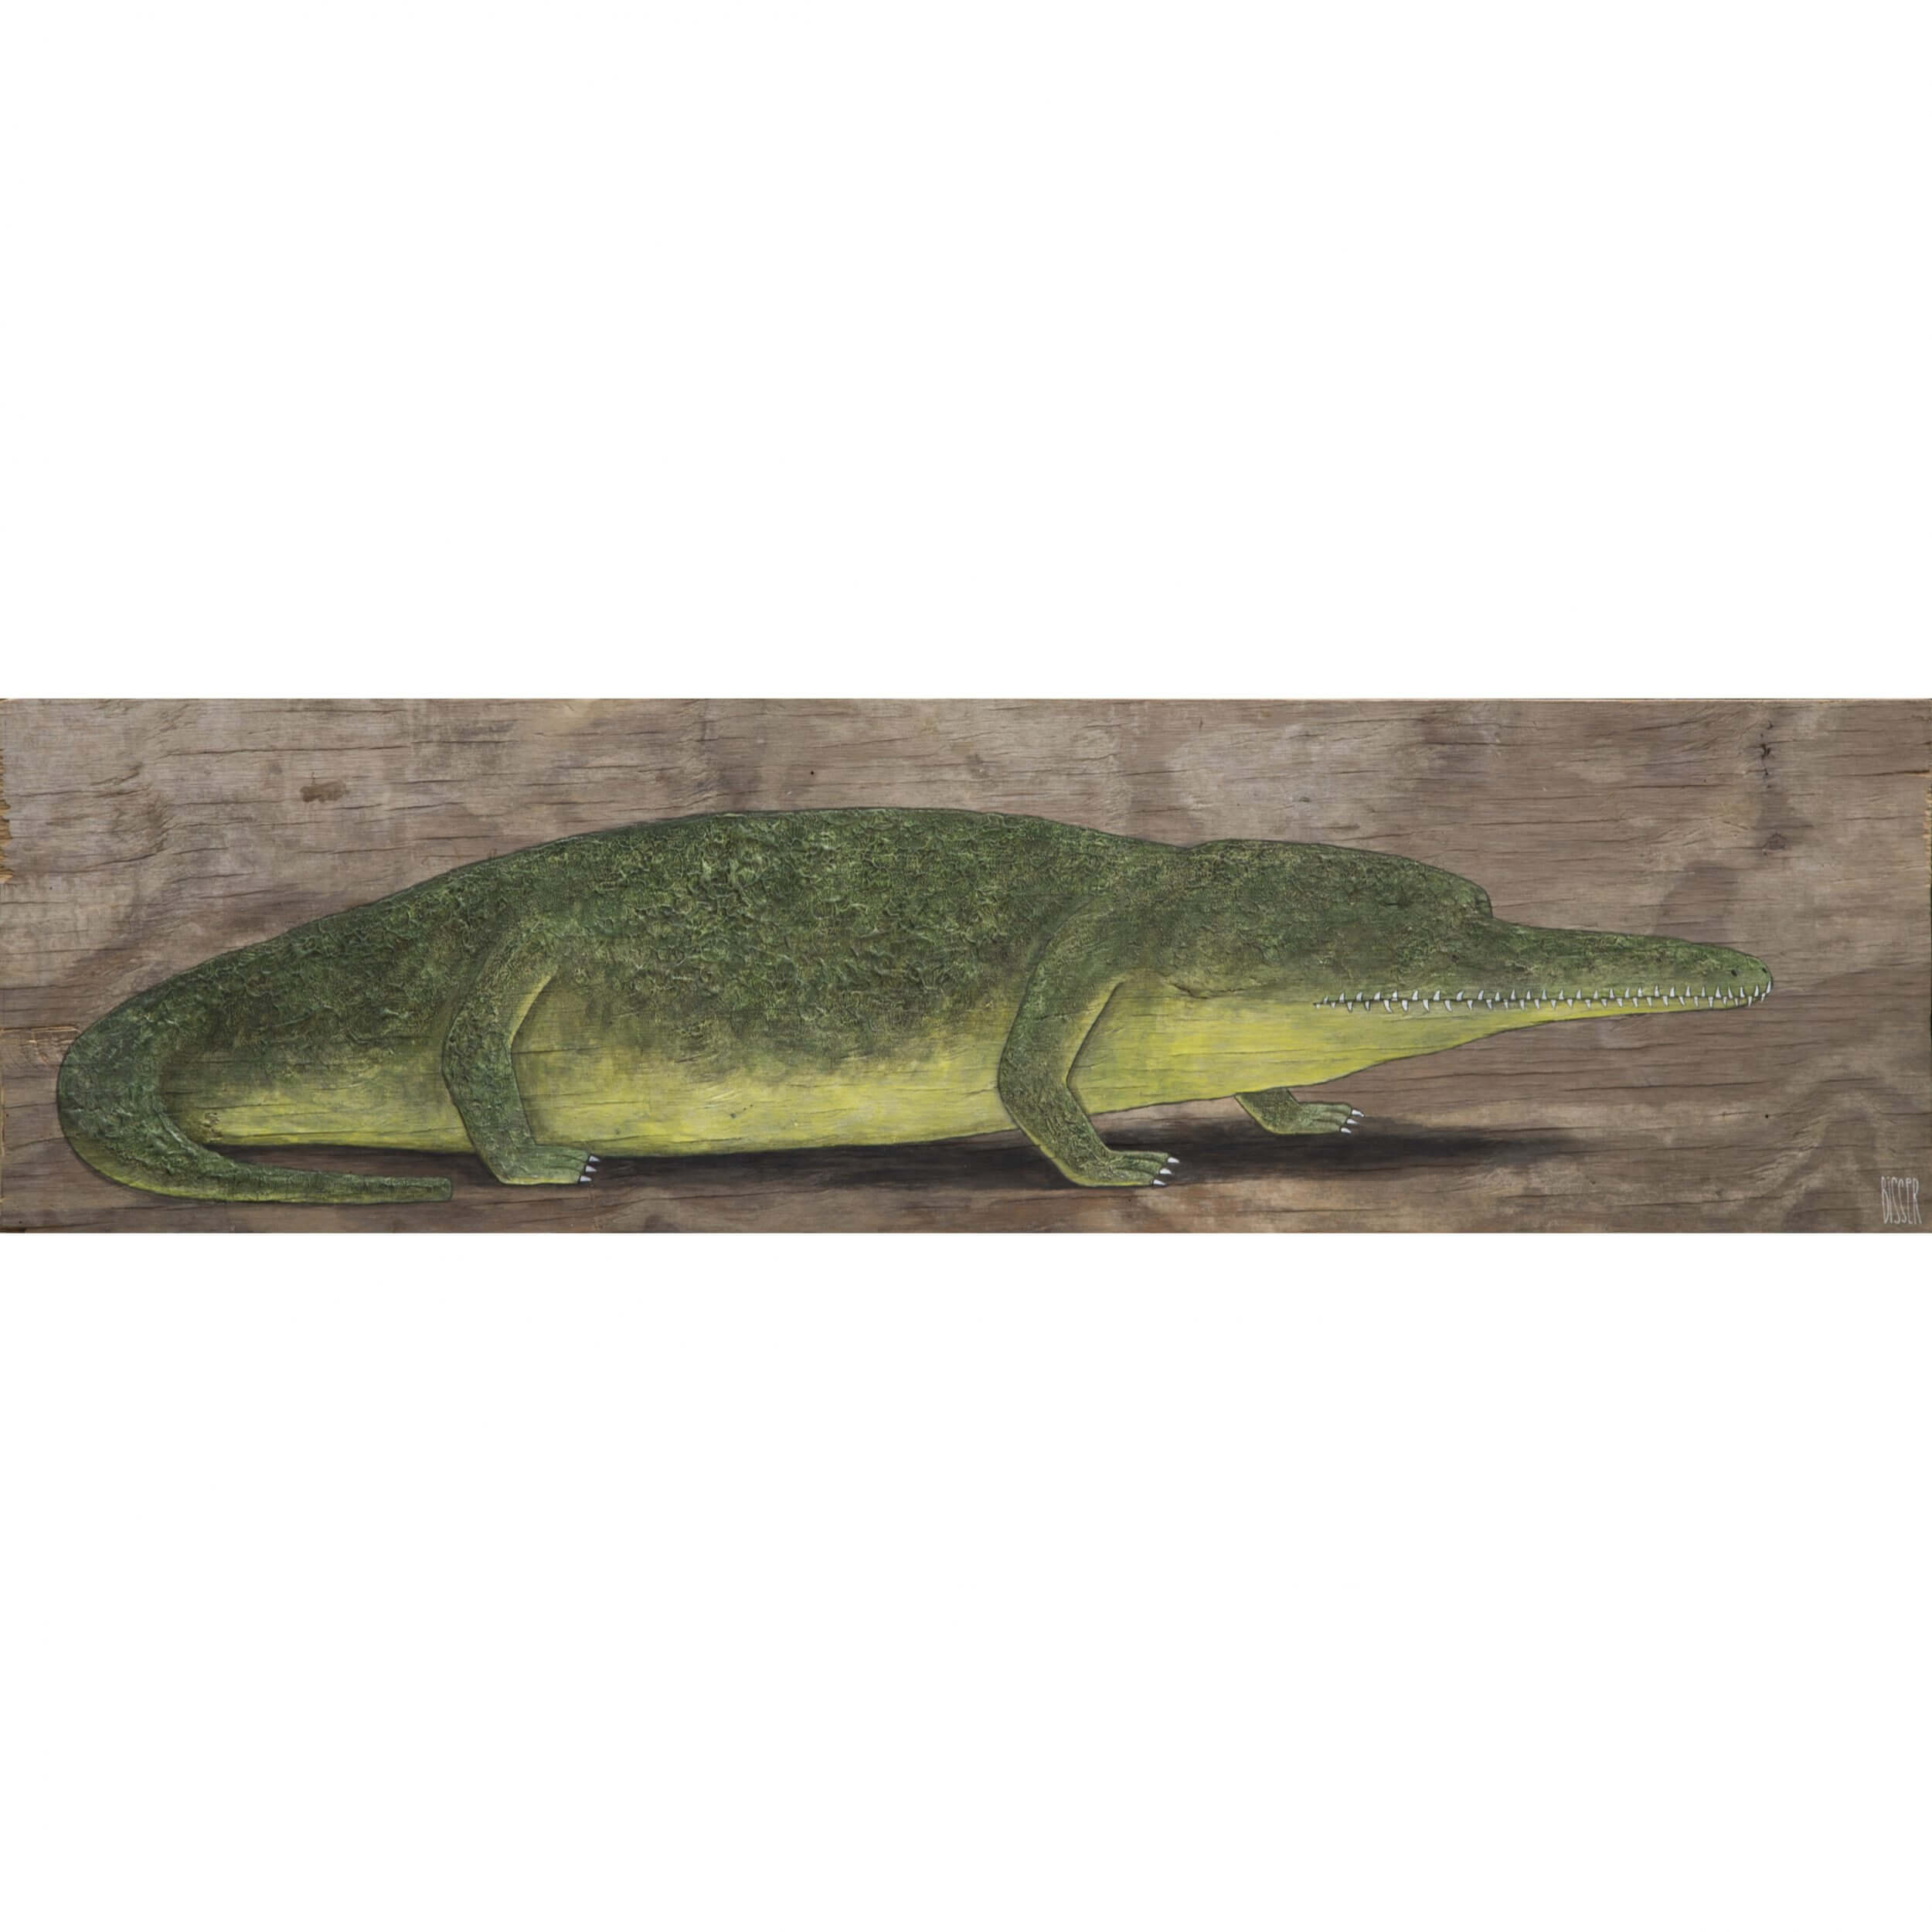 Bisser - Crocodile (on Wood)